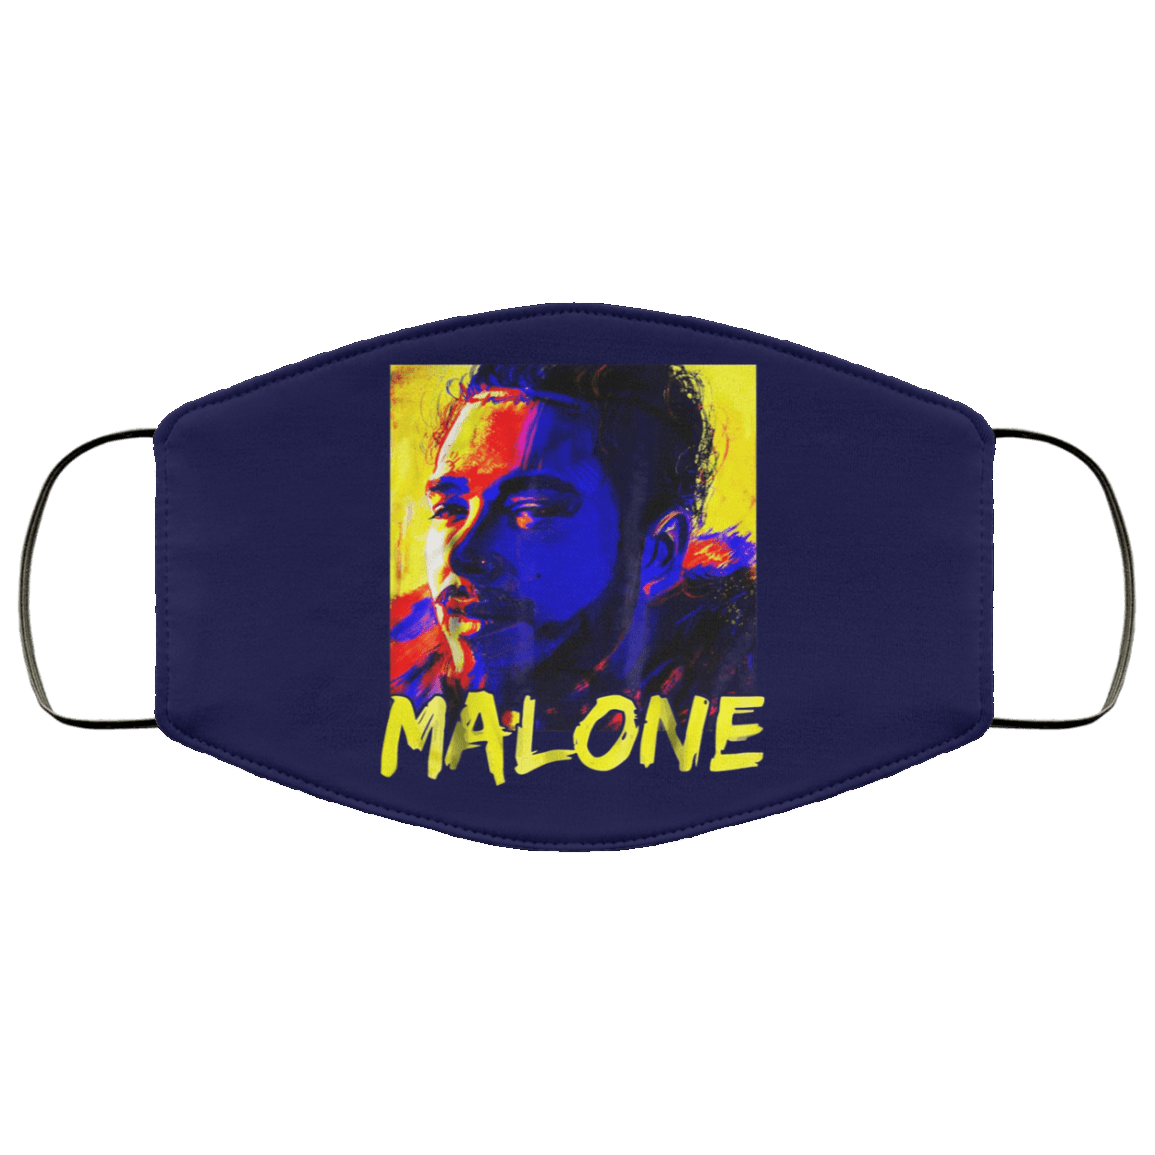 Malone Vintage Rapper Post Malone Face Mask 1274-13182-88283015-59070 - Tee Ript